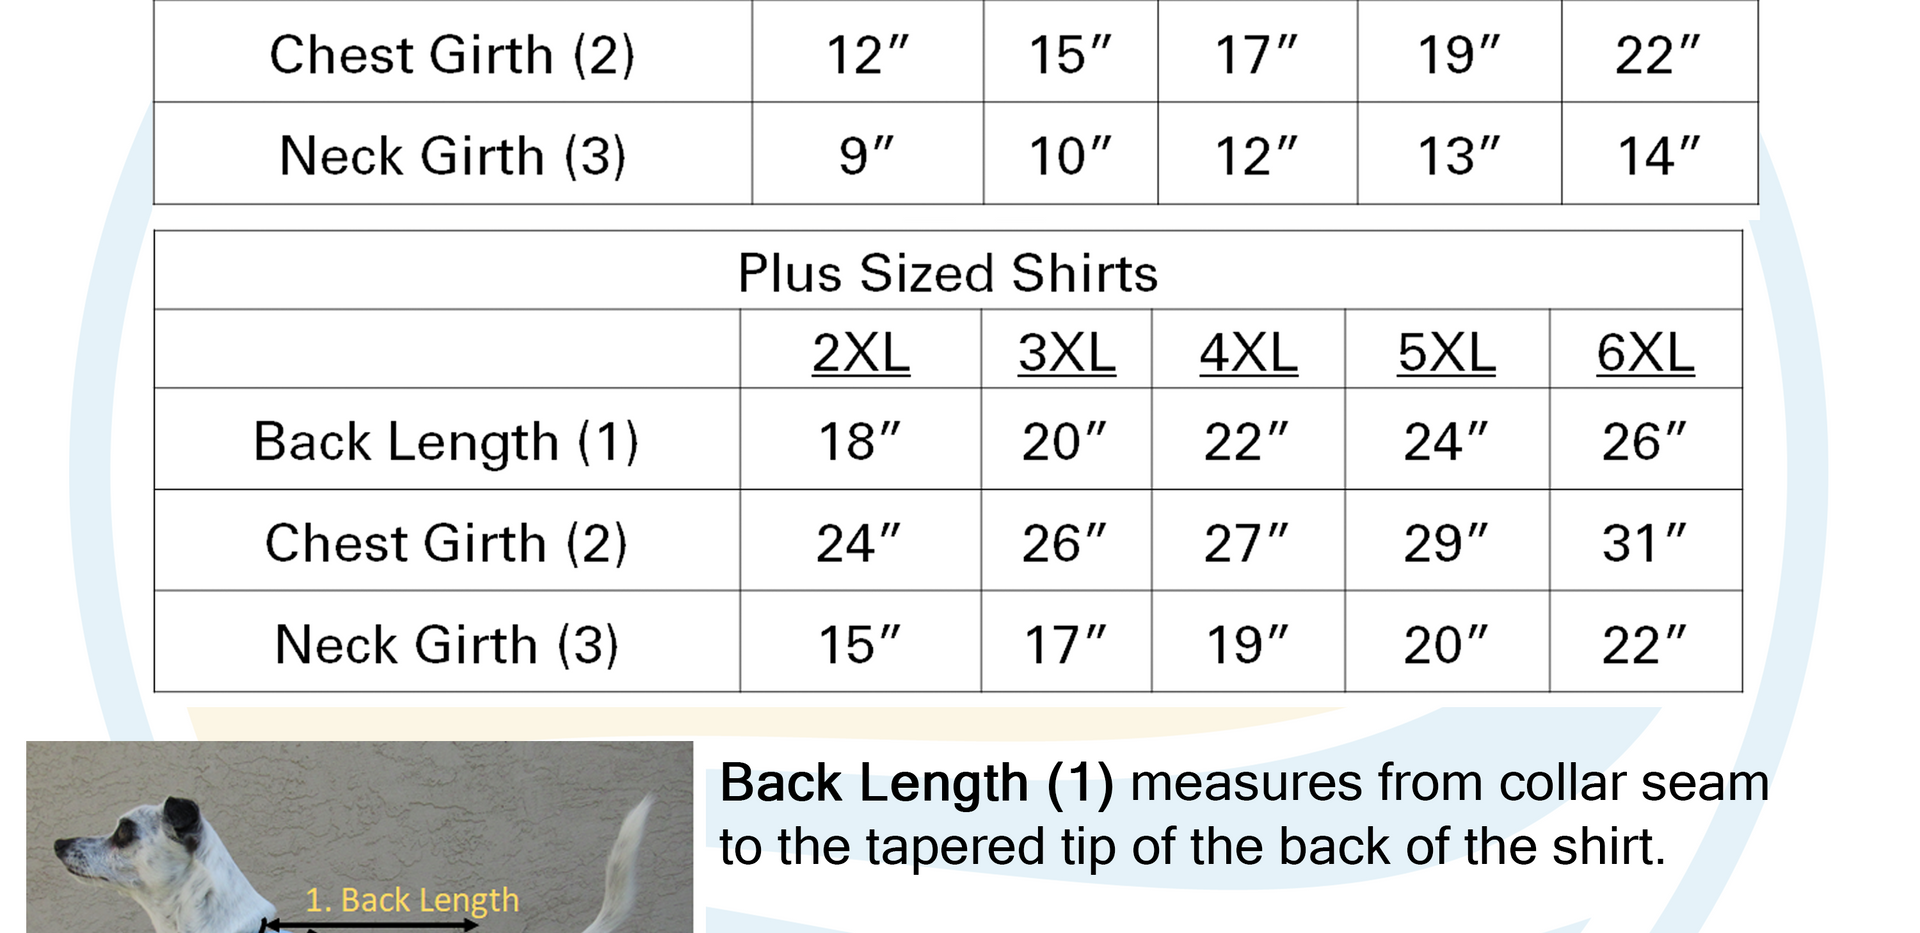 Dog's Sizing Chart with Measurements